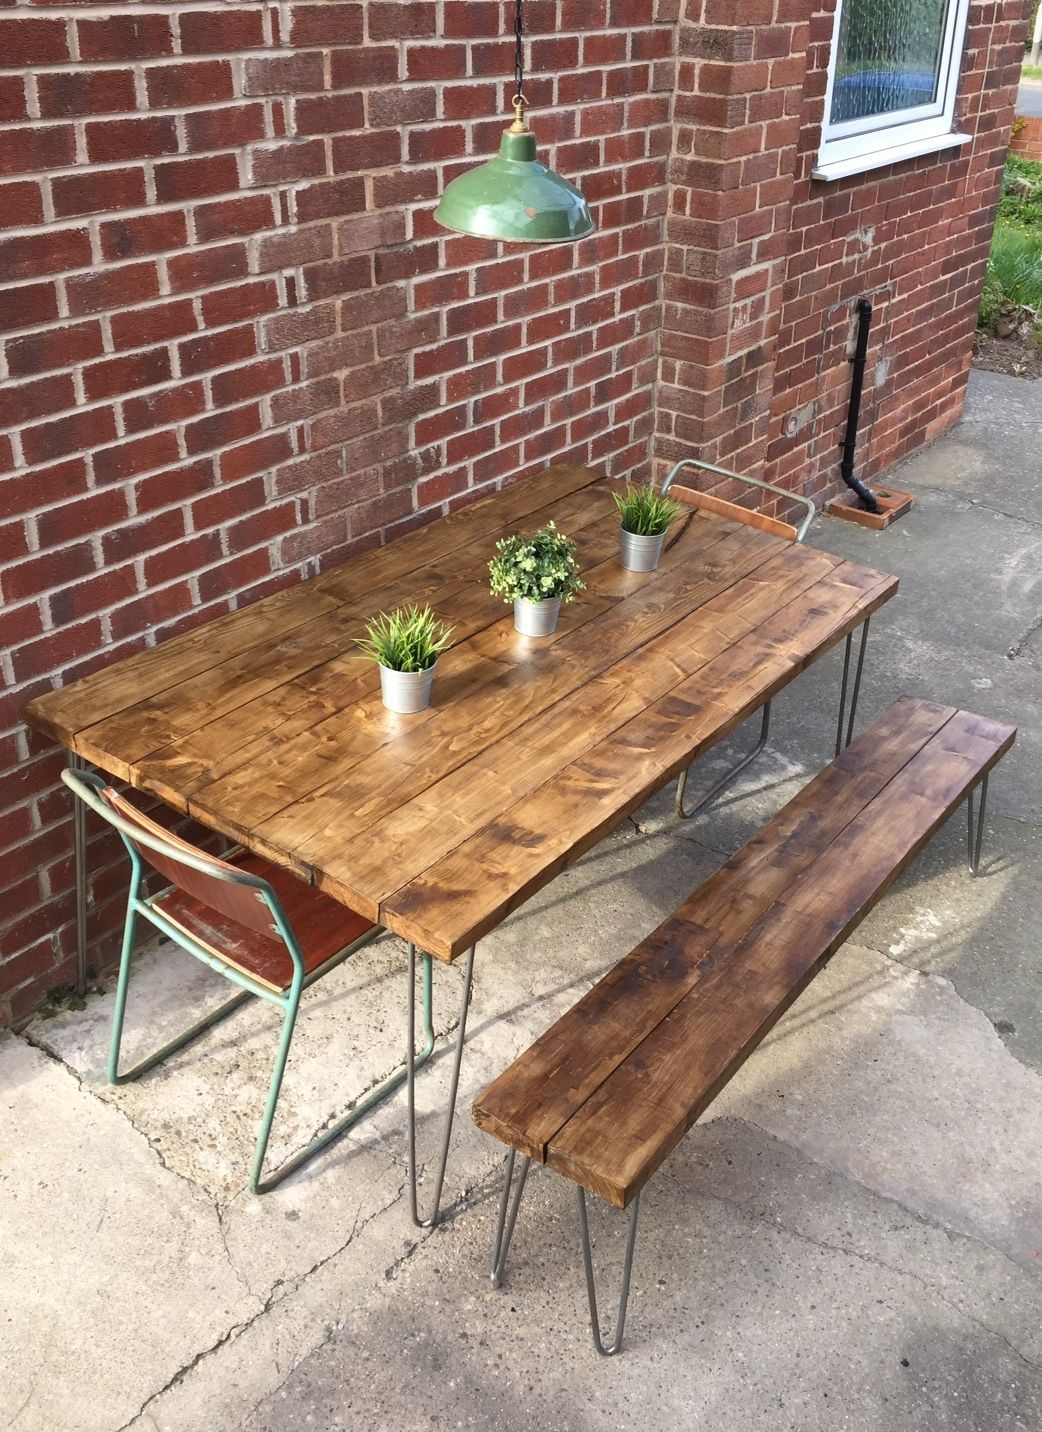 Industrial Dining Table And Seating Bench Hair Pin Legs Rustic Shabby Chic Industrial Dining Table Dining Table Dining Table With Bench